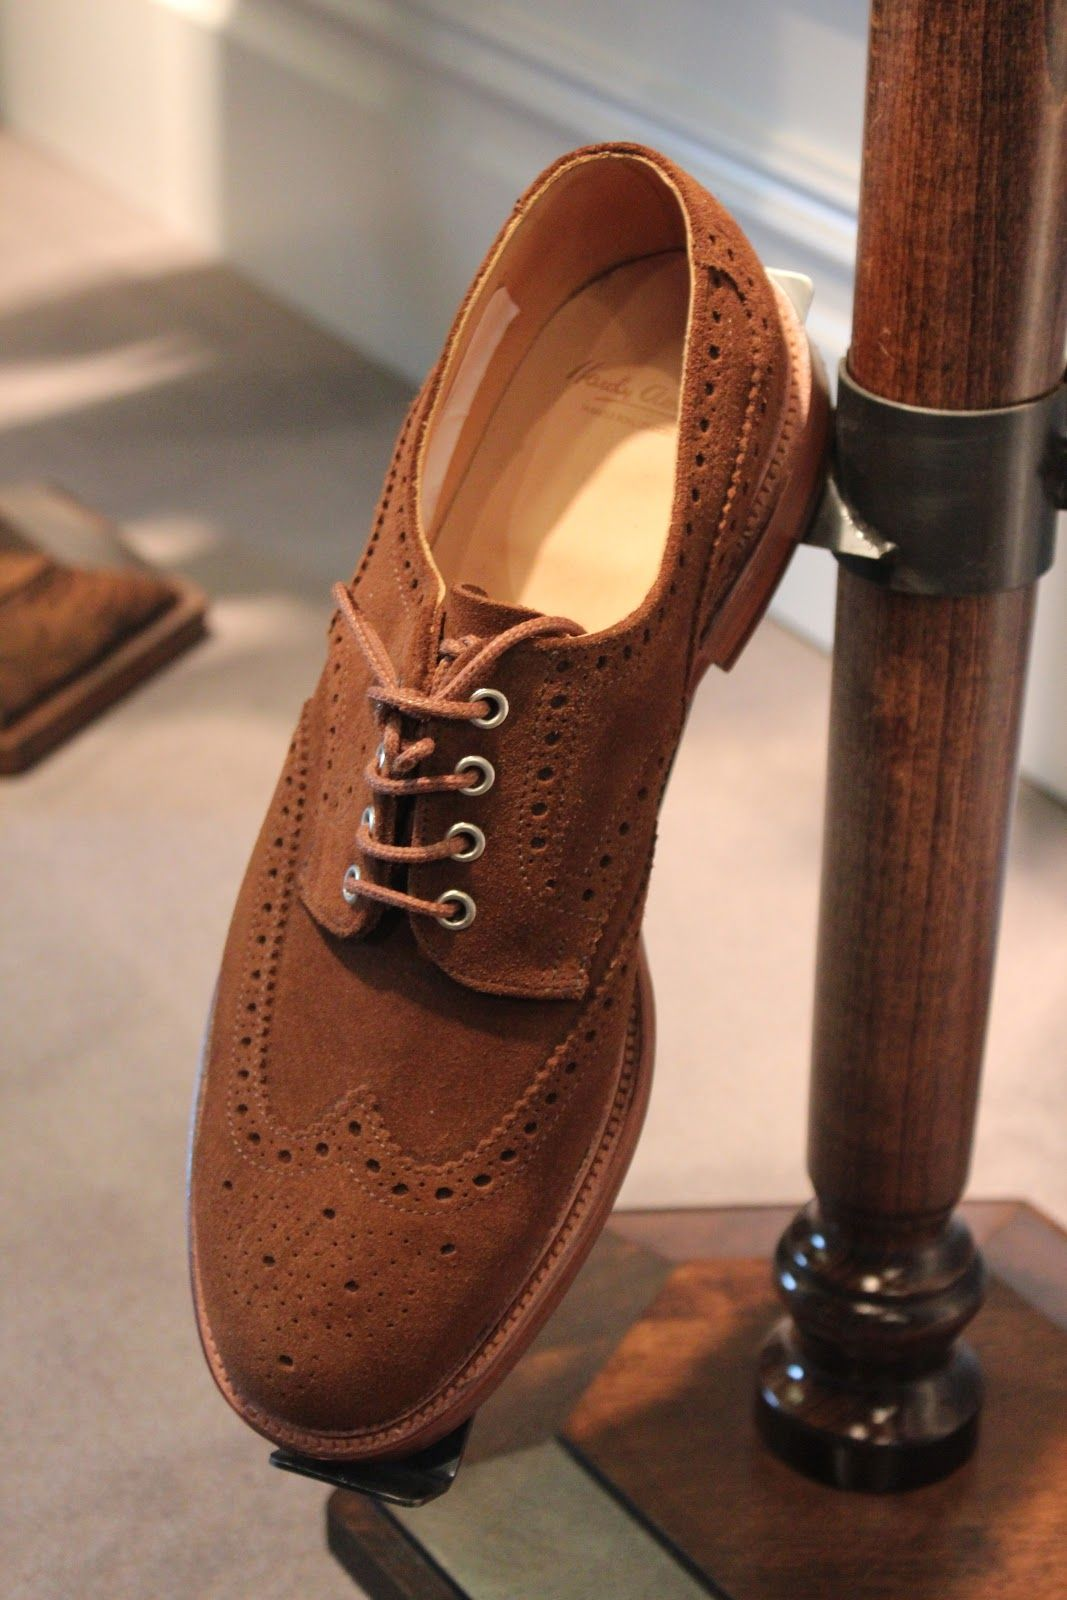 Pitti Part 1 | Like a kid in a candy store ~ The Bespoke Dudes by Fabio Attanasio